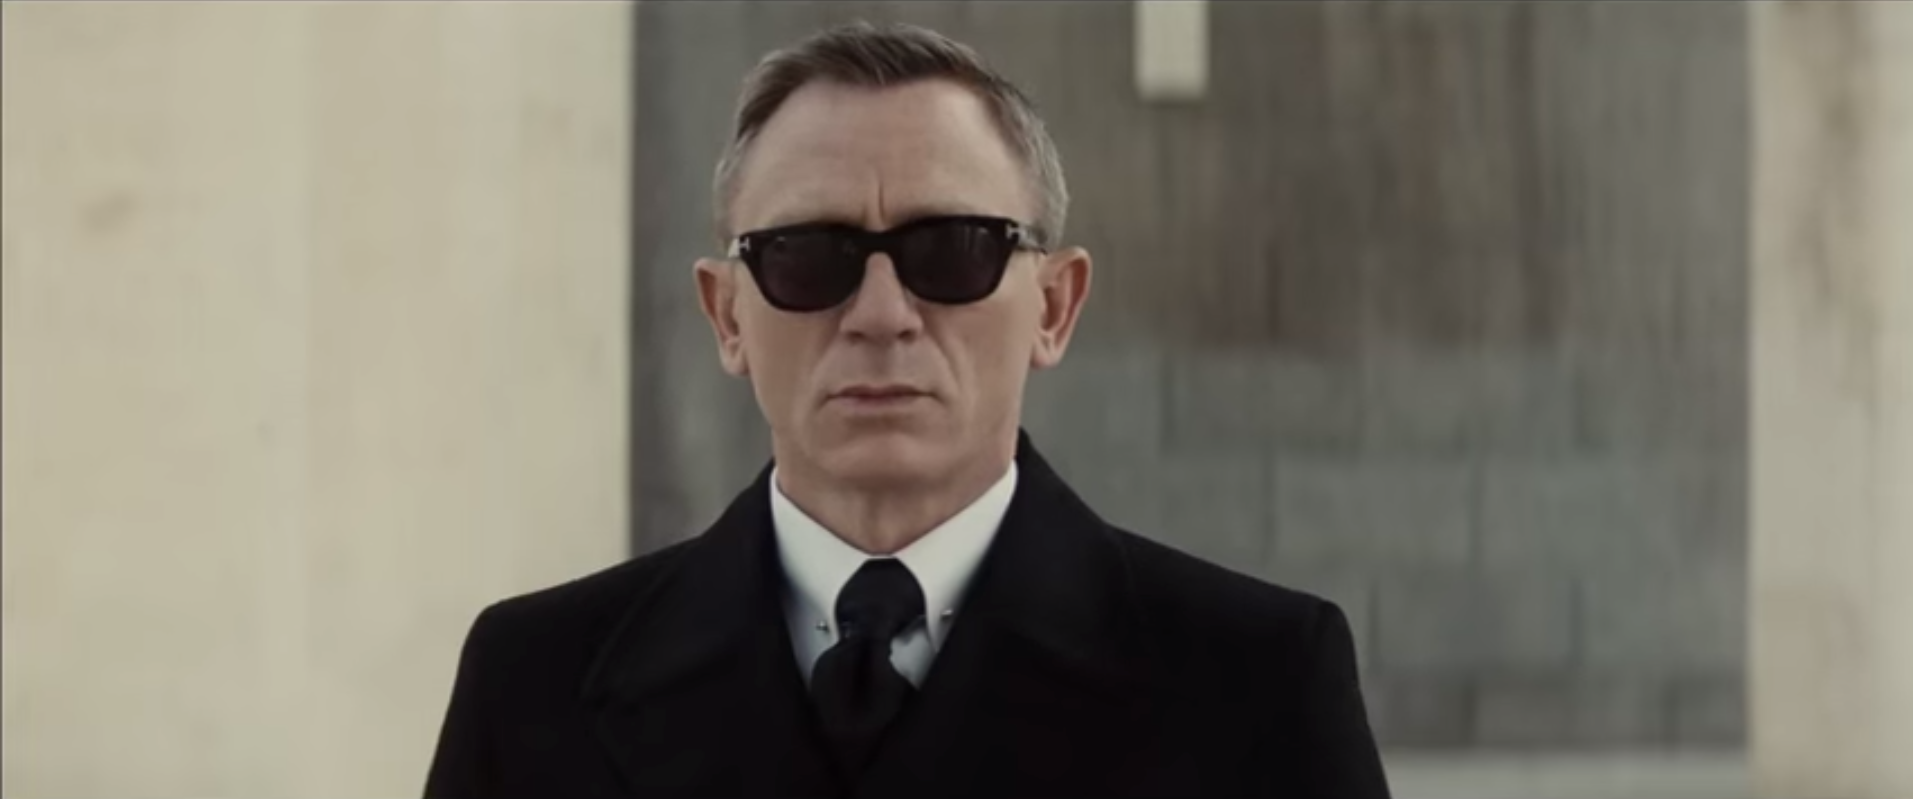 james-bond-spectre-sunglasses